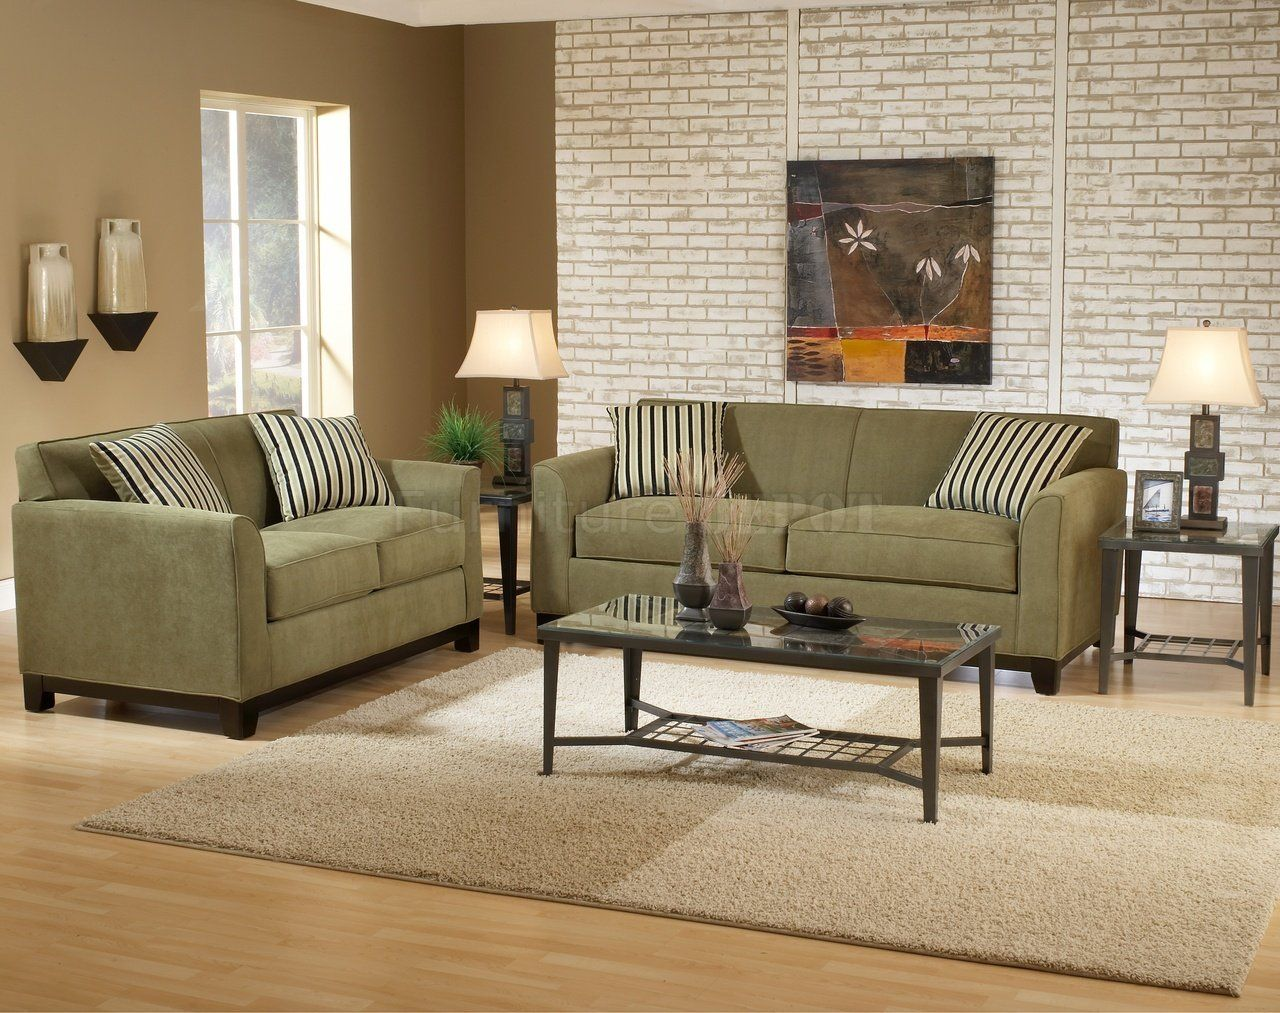 mixing leather and fabric furniture in living room light blue wallpaper wall color for sage green couch | casual ...